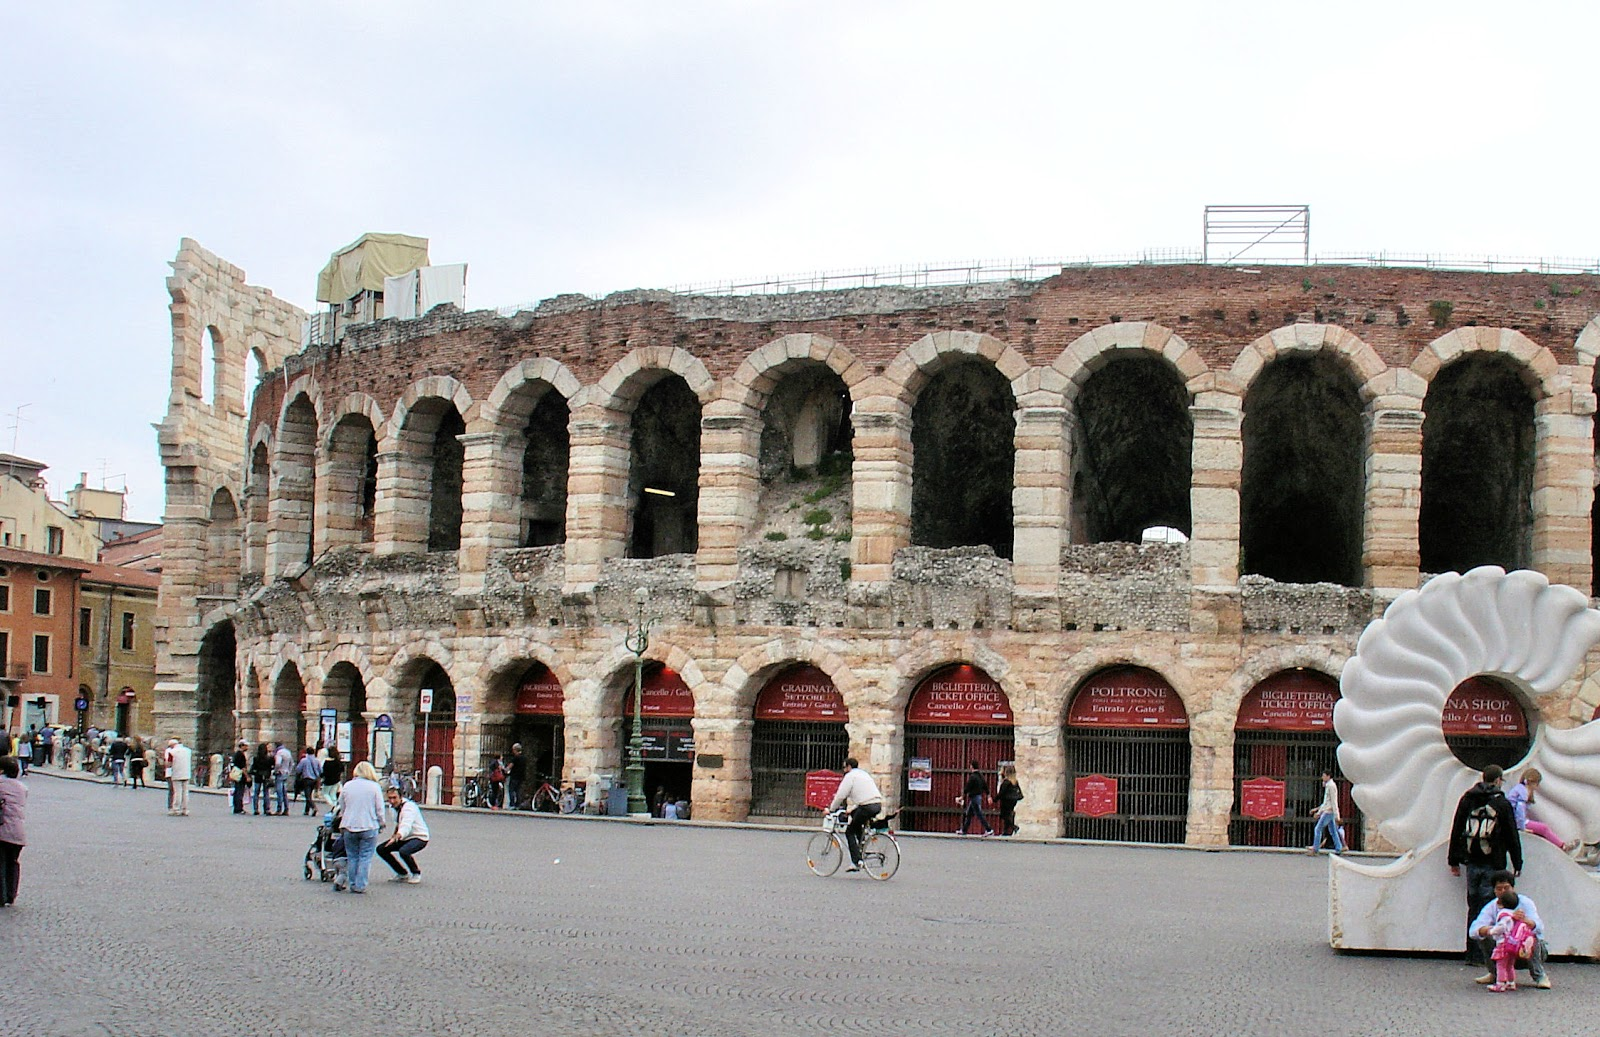 Verona Arena dates back to A.D. 30 and is built entirely of pink marble.